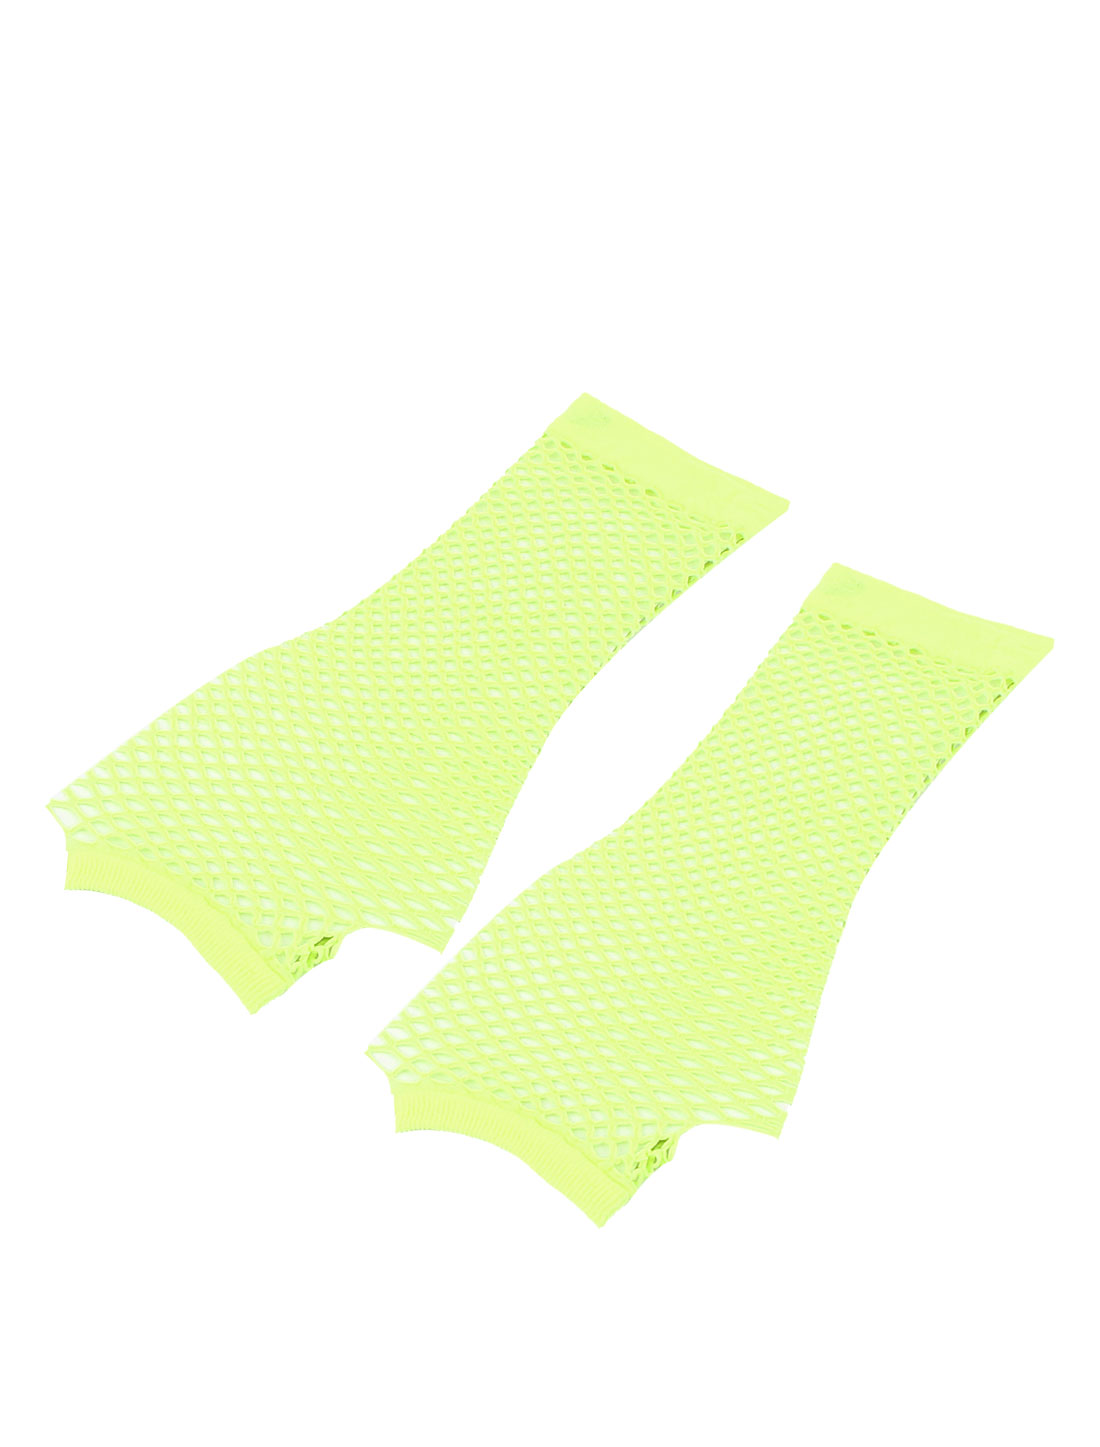 Lady Woman Yellow Elastic Mesh Net Fingerless Thumbhole Gloves Pair